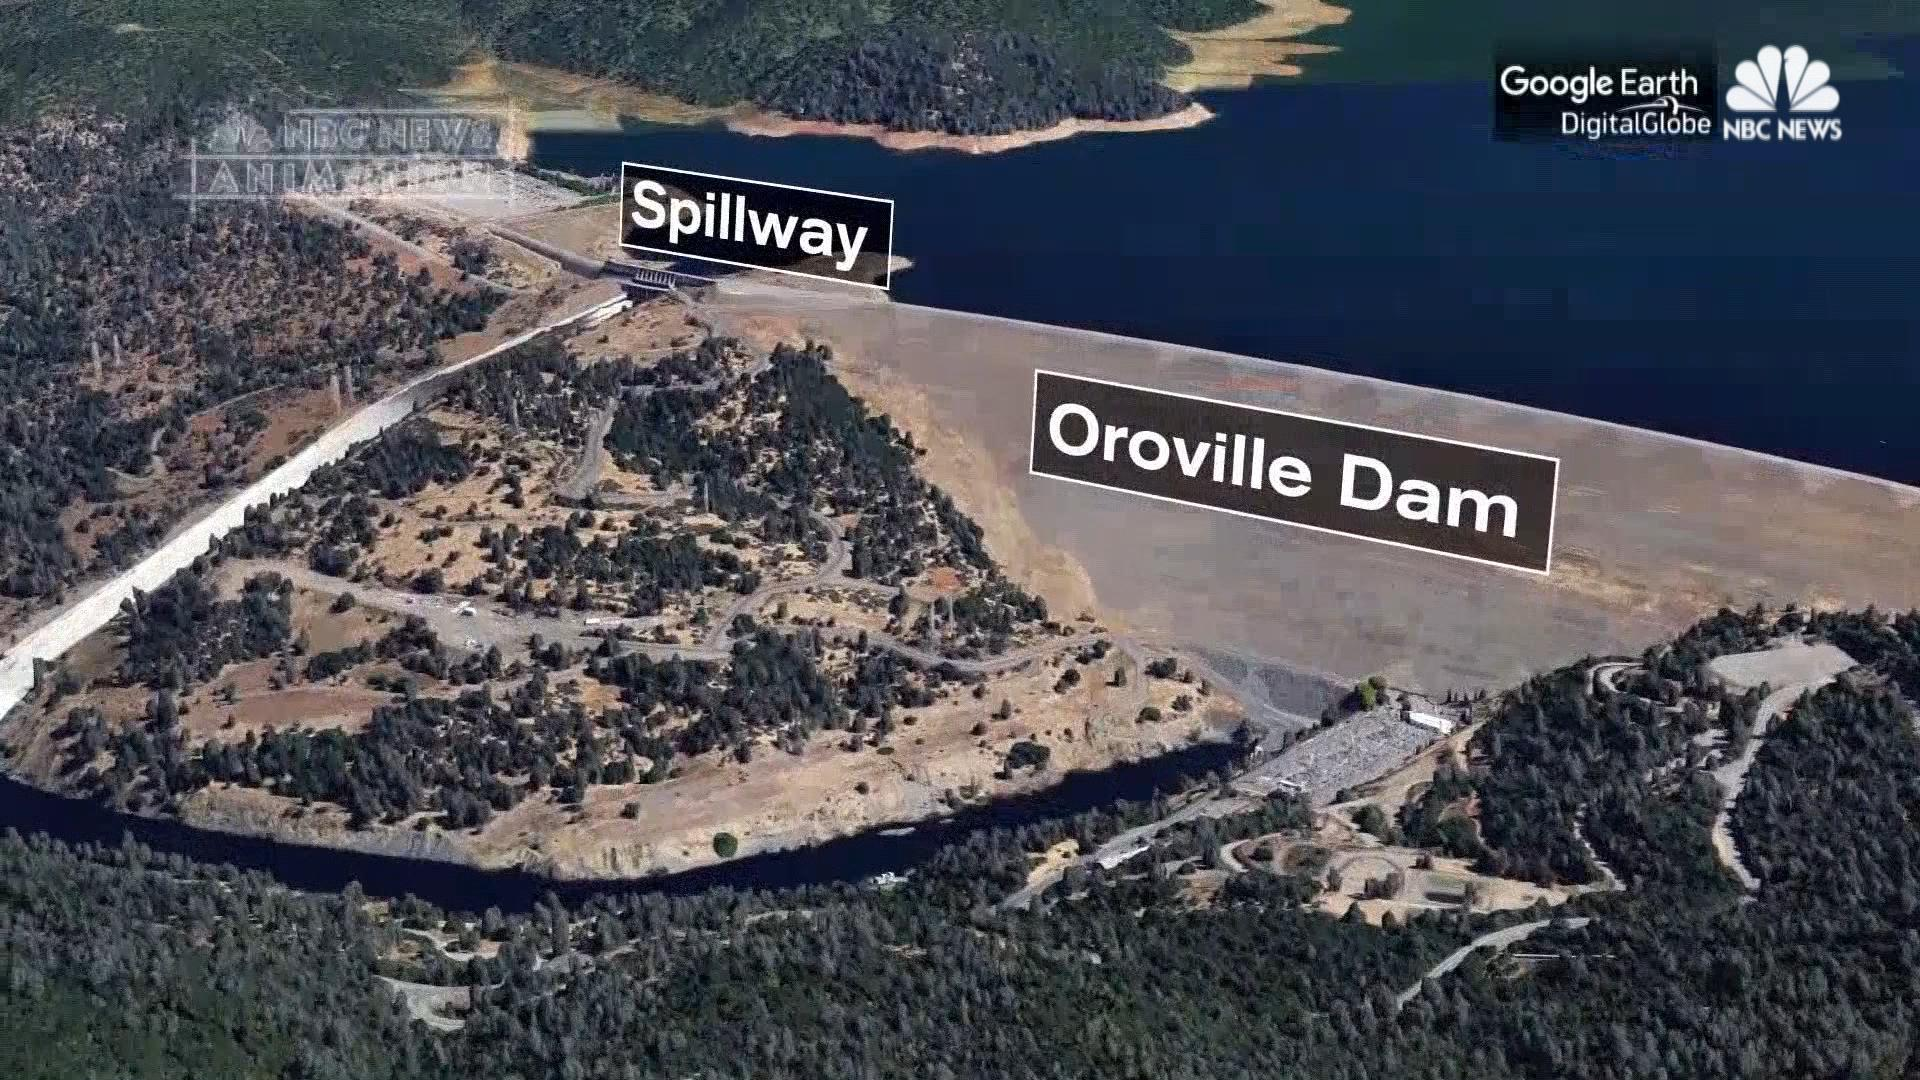 california braces for week of heavy rain after oroville spillway